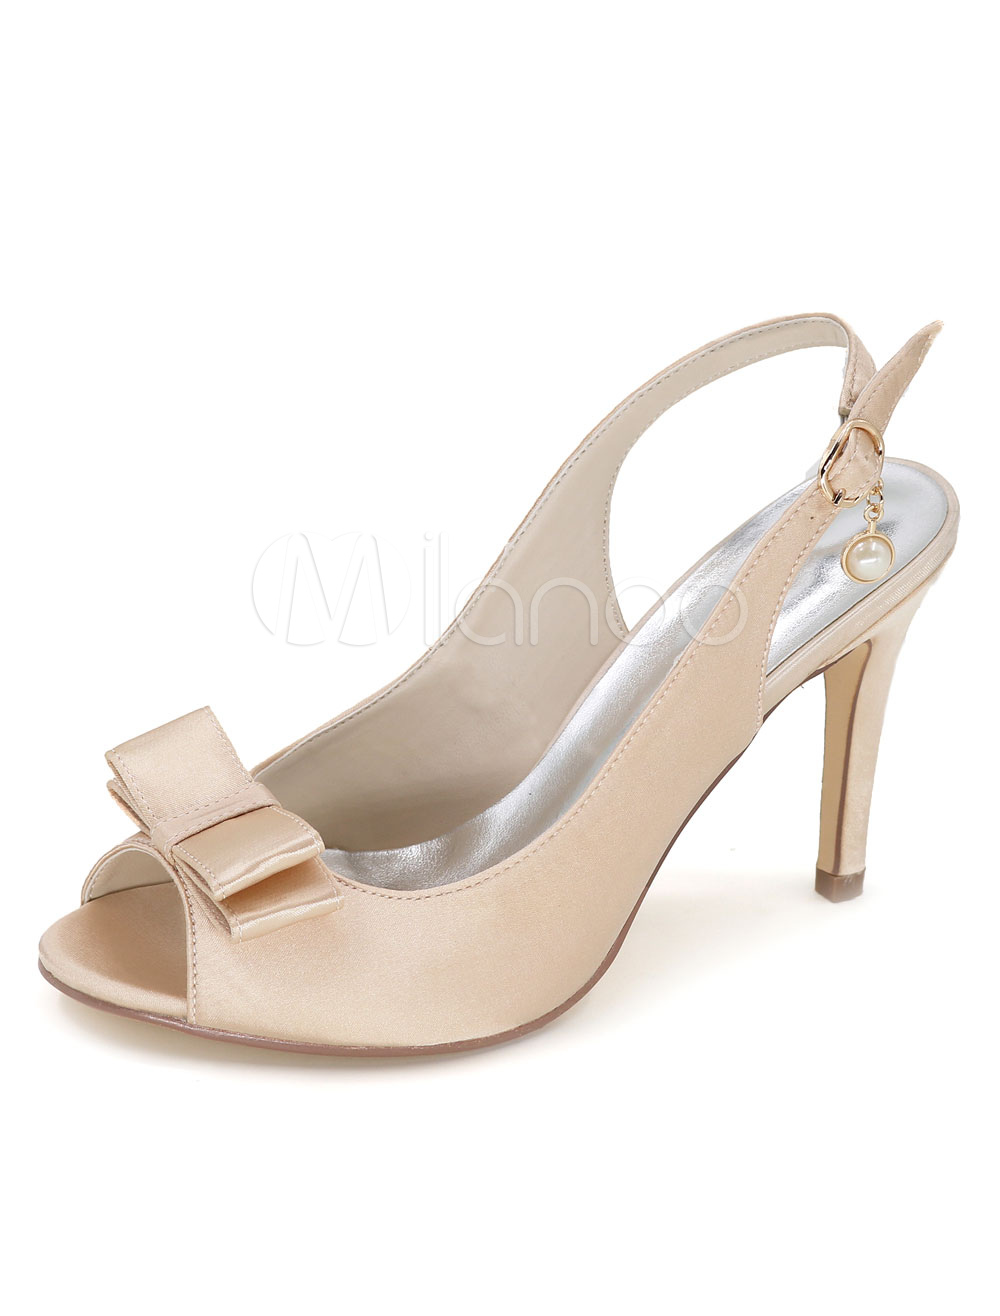 Peep Wedding Shoes Women's Bows Satin High Heel Shoes